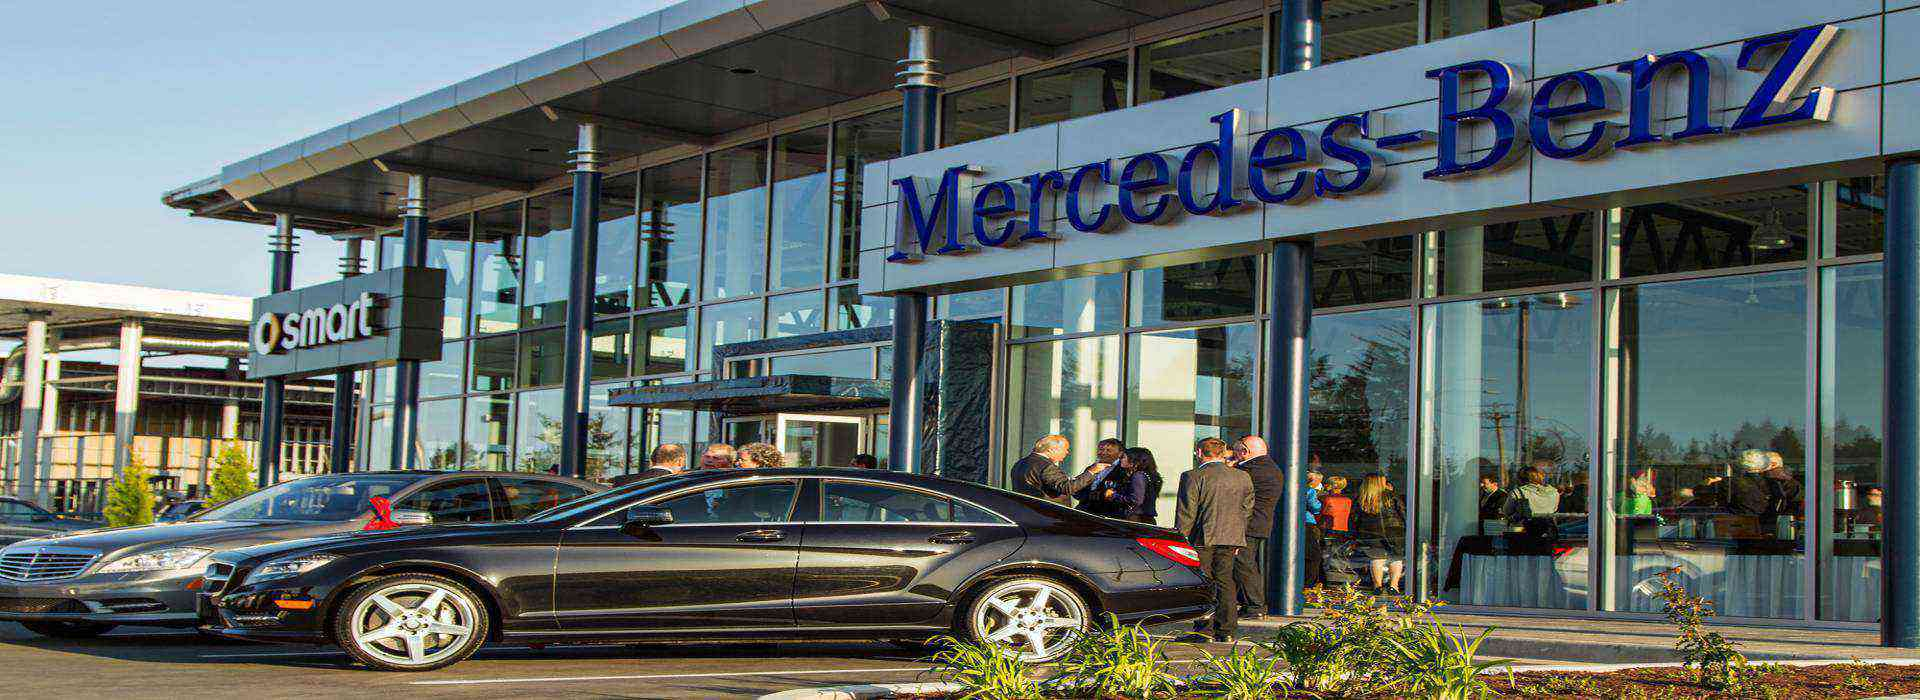 Mercedes benz indonesia customer care number address for Mercedes benz emergency number